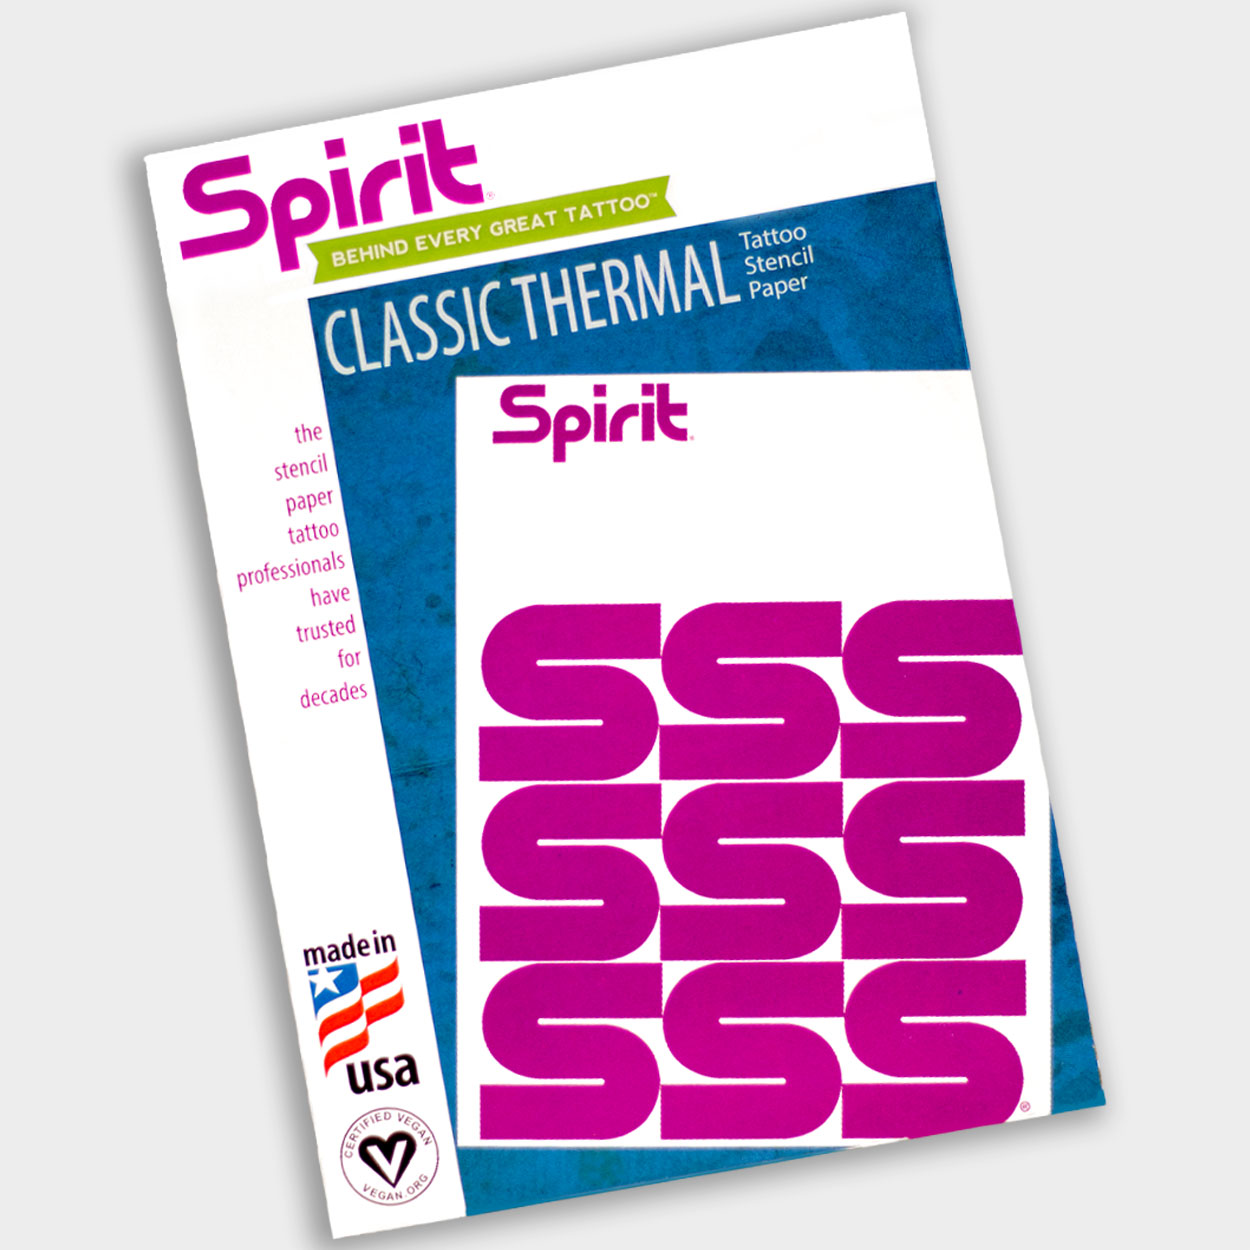 Classic Thermal Tattoo Stencil Transfer Paper - Spirit - Killer Silver